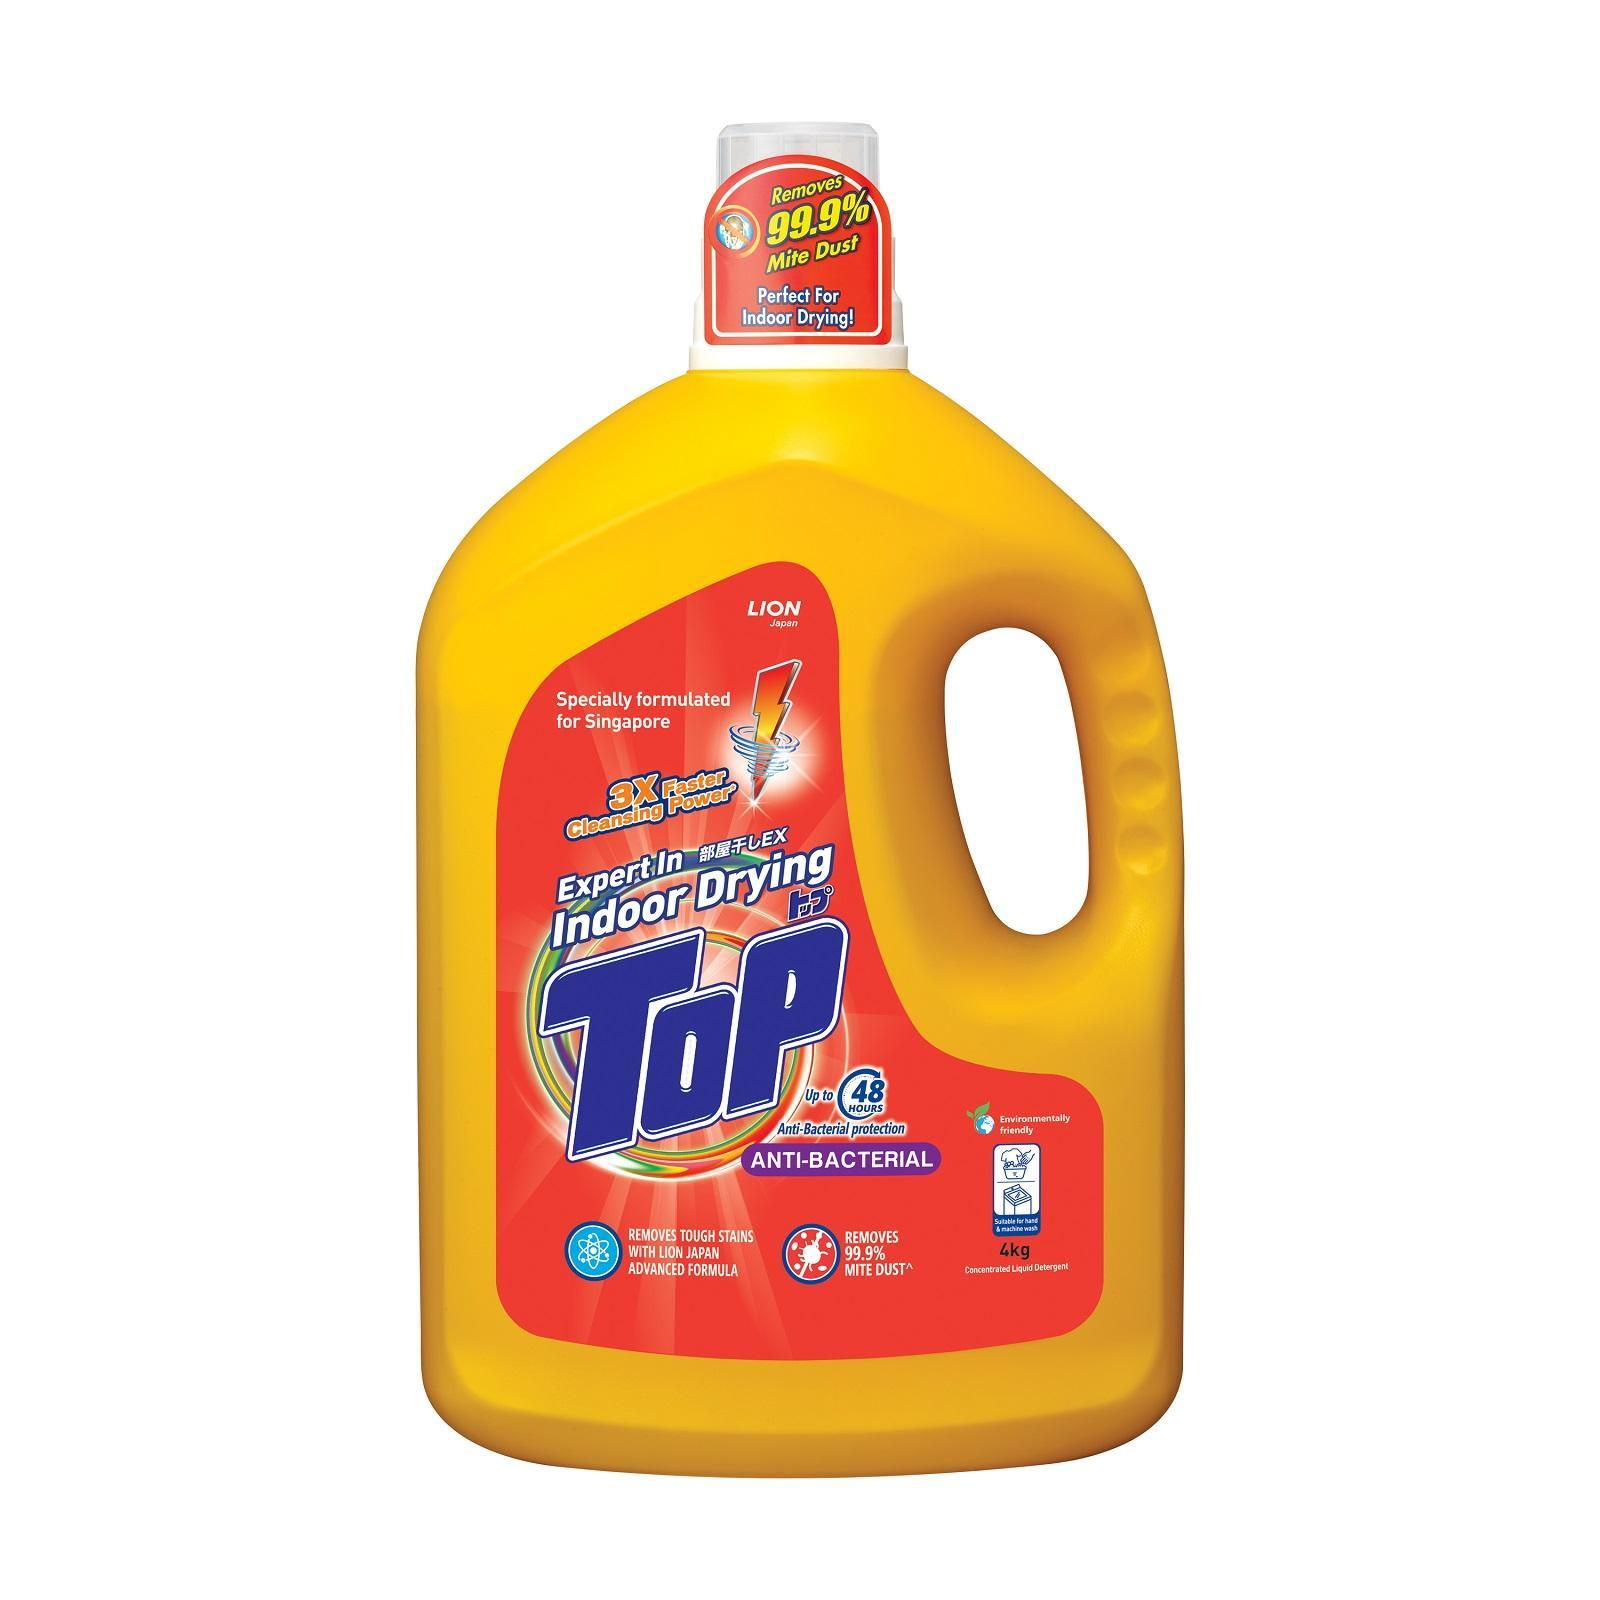 Top Anti Bacterial Concentrated Liquid Detergent